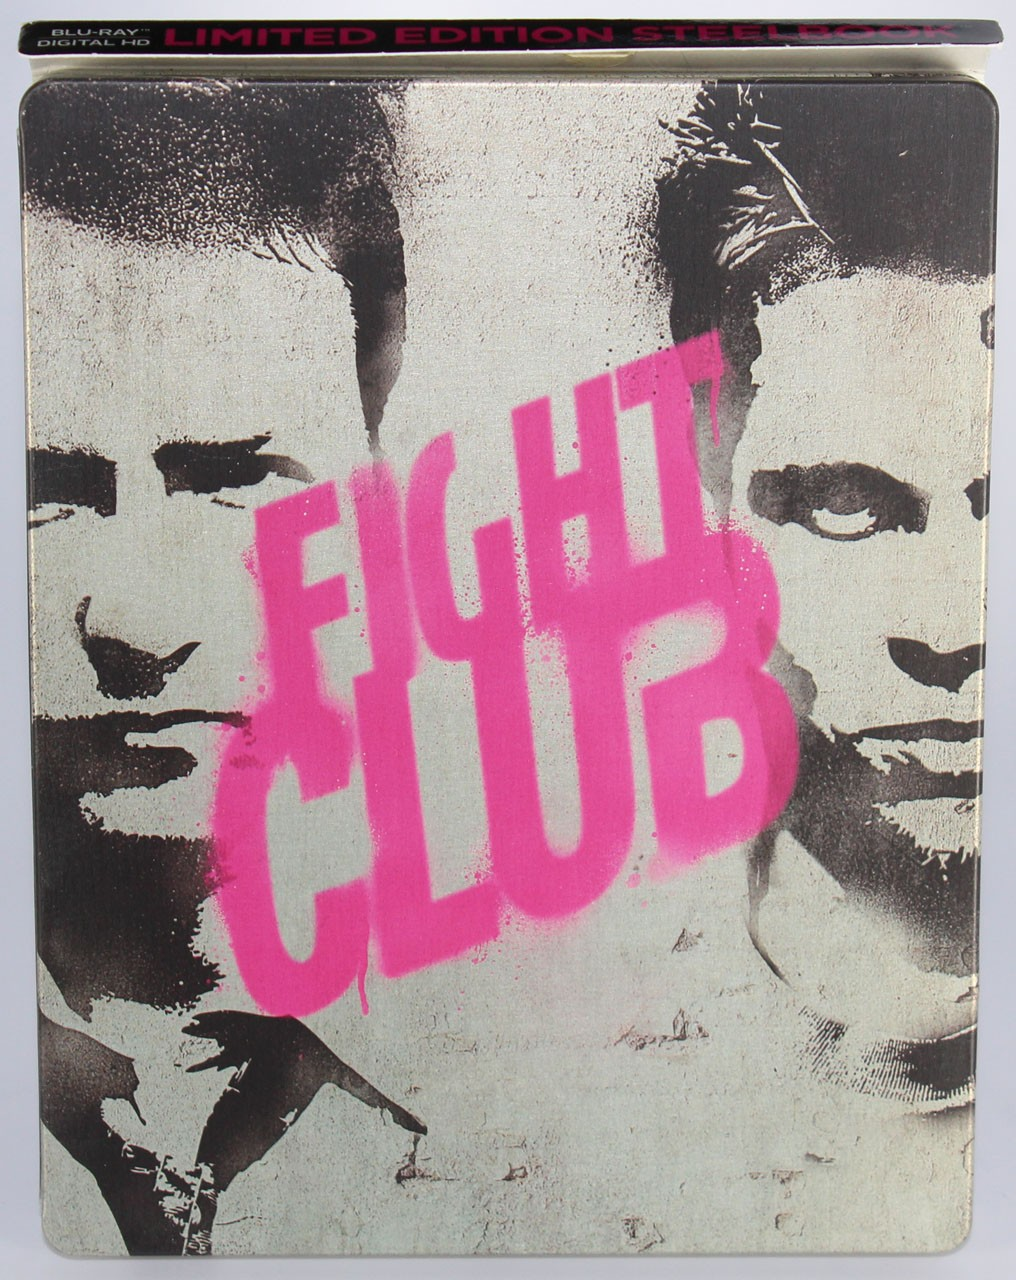 fight club blu ray  New FIGHT CLUB Limited COLLECTOR'S EDITION STEELBOOK BLU RAY BRAD ...